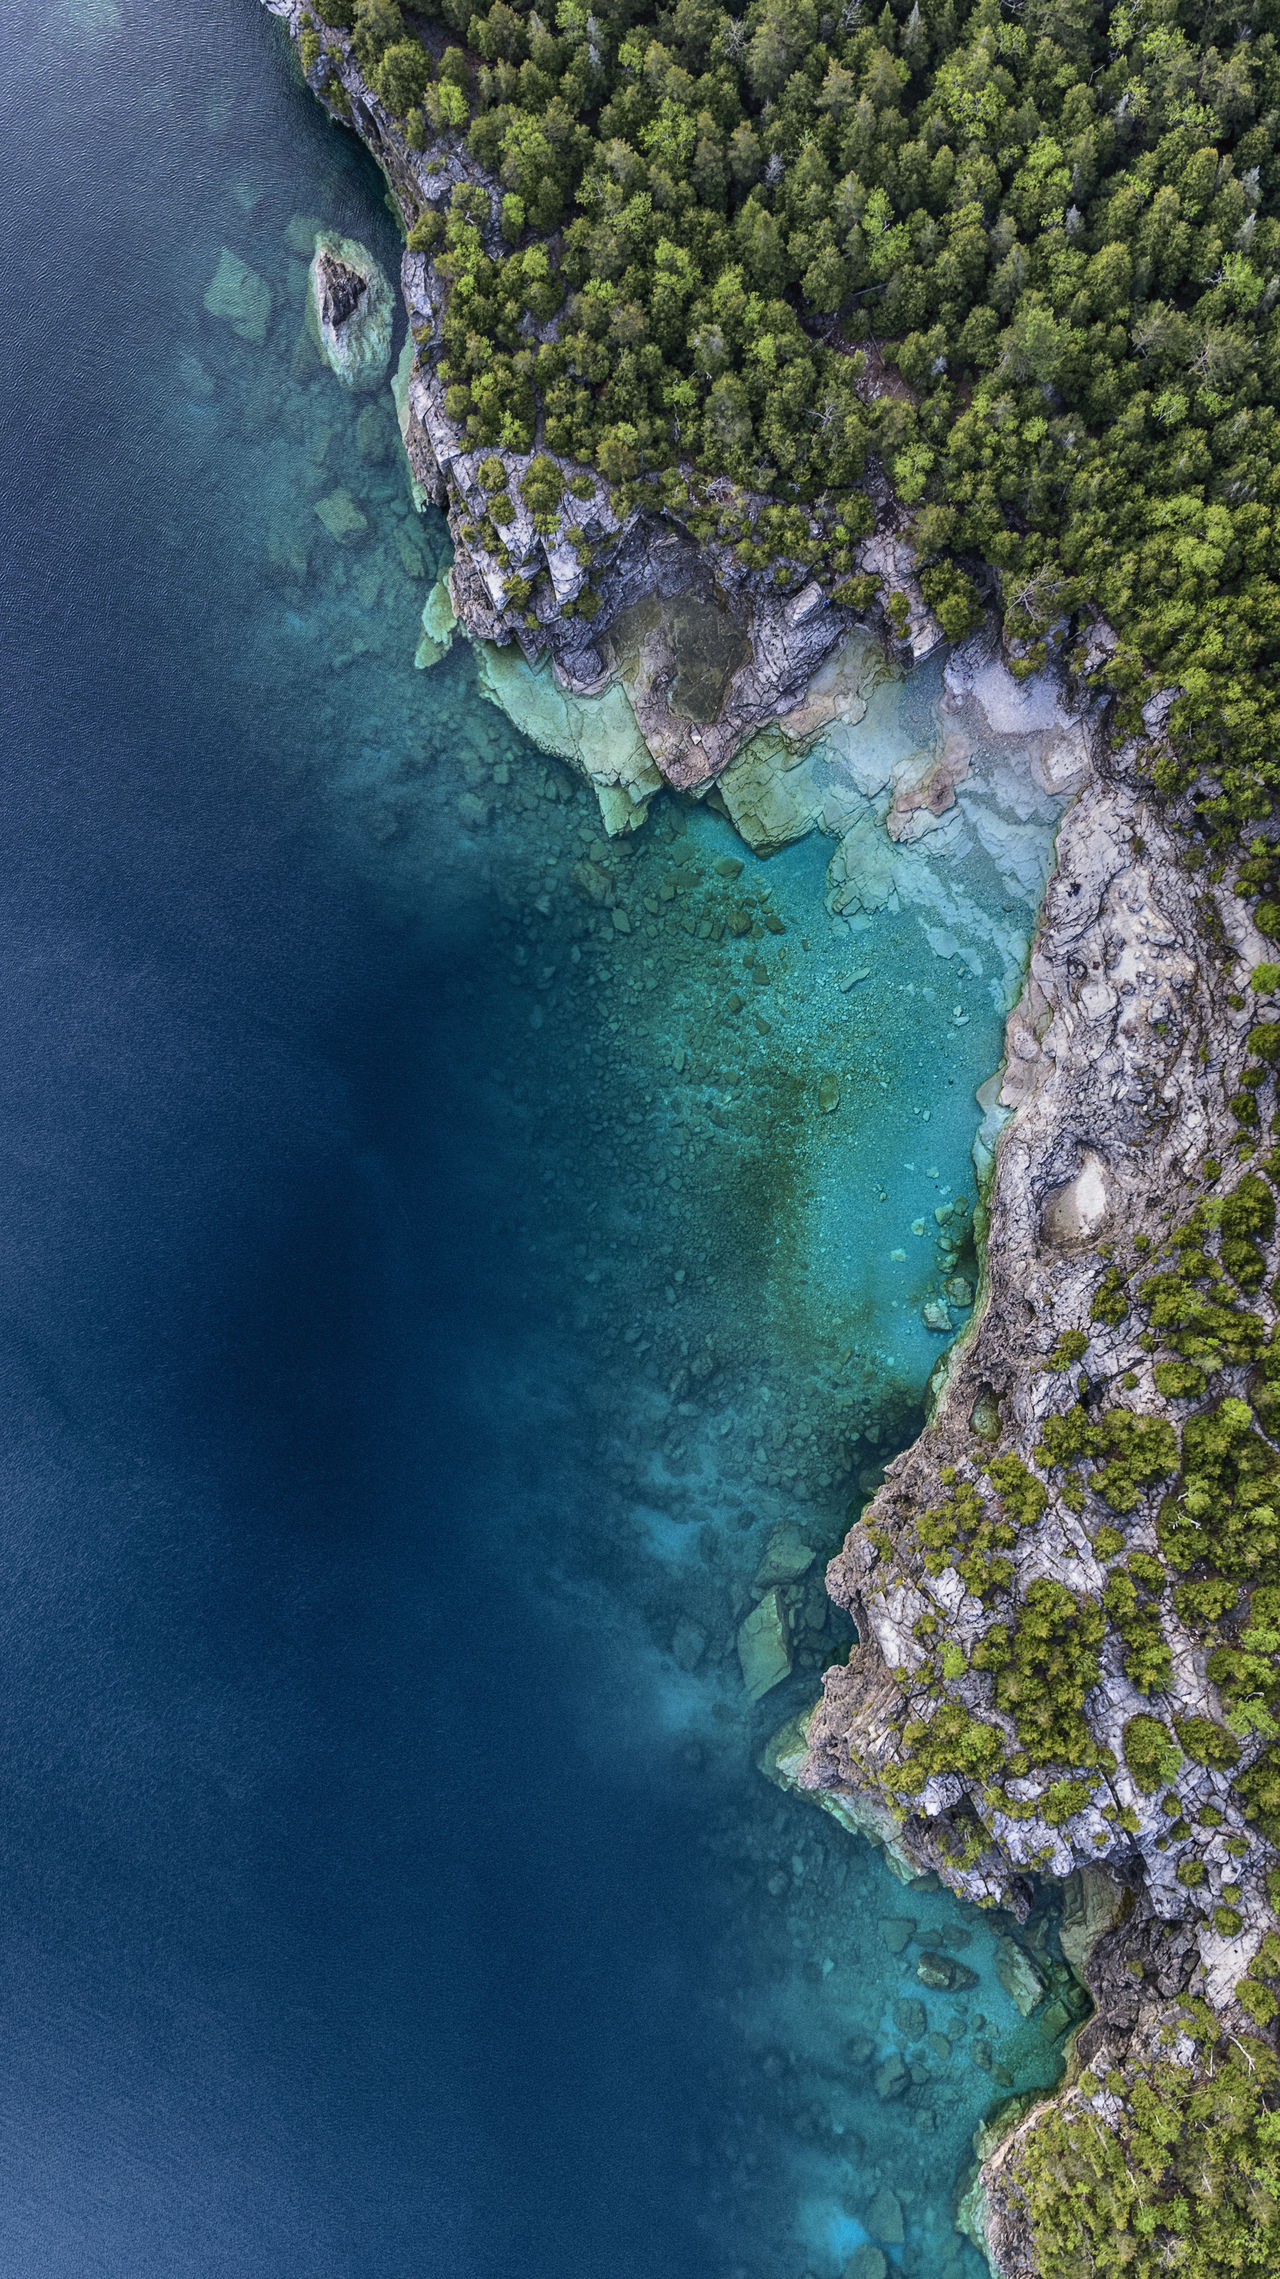 Water High Angle View Beauty In Nature Tree Exhilaration Summer Outdoors Sun Nature Flying Aerial Drone  Landscape Water_collection Water Beach Grotto Grotte Huron Shoreline Great Lakes Wilderness Clear Forest The Great Outdoors - 2017 EyeEm Awards